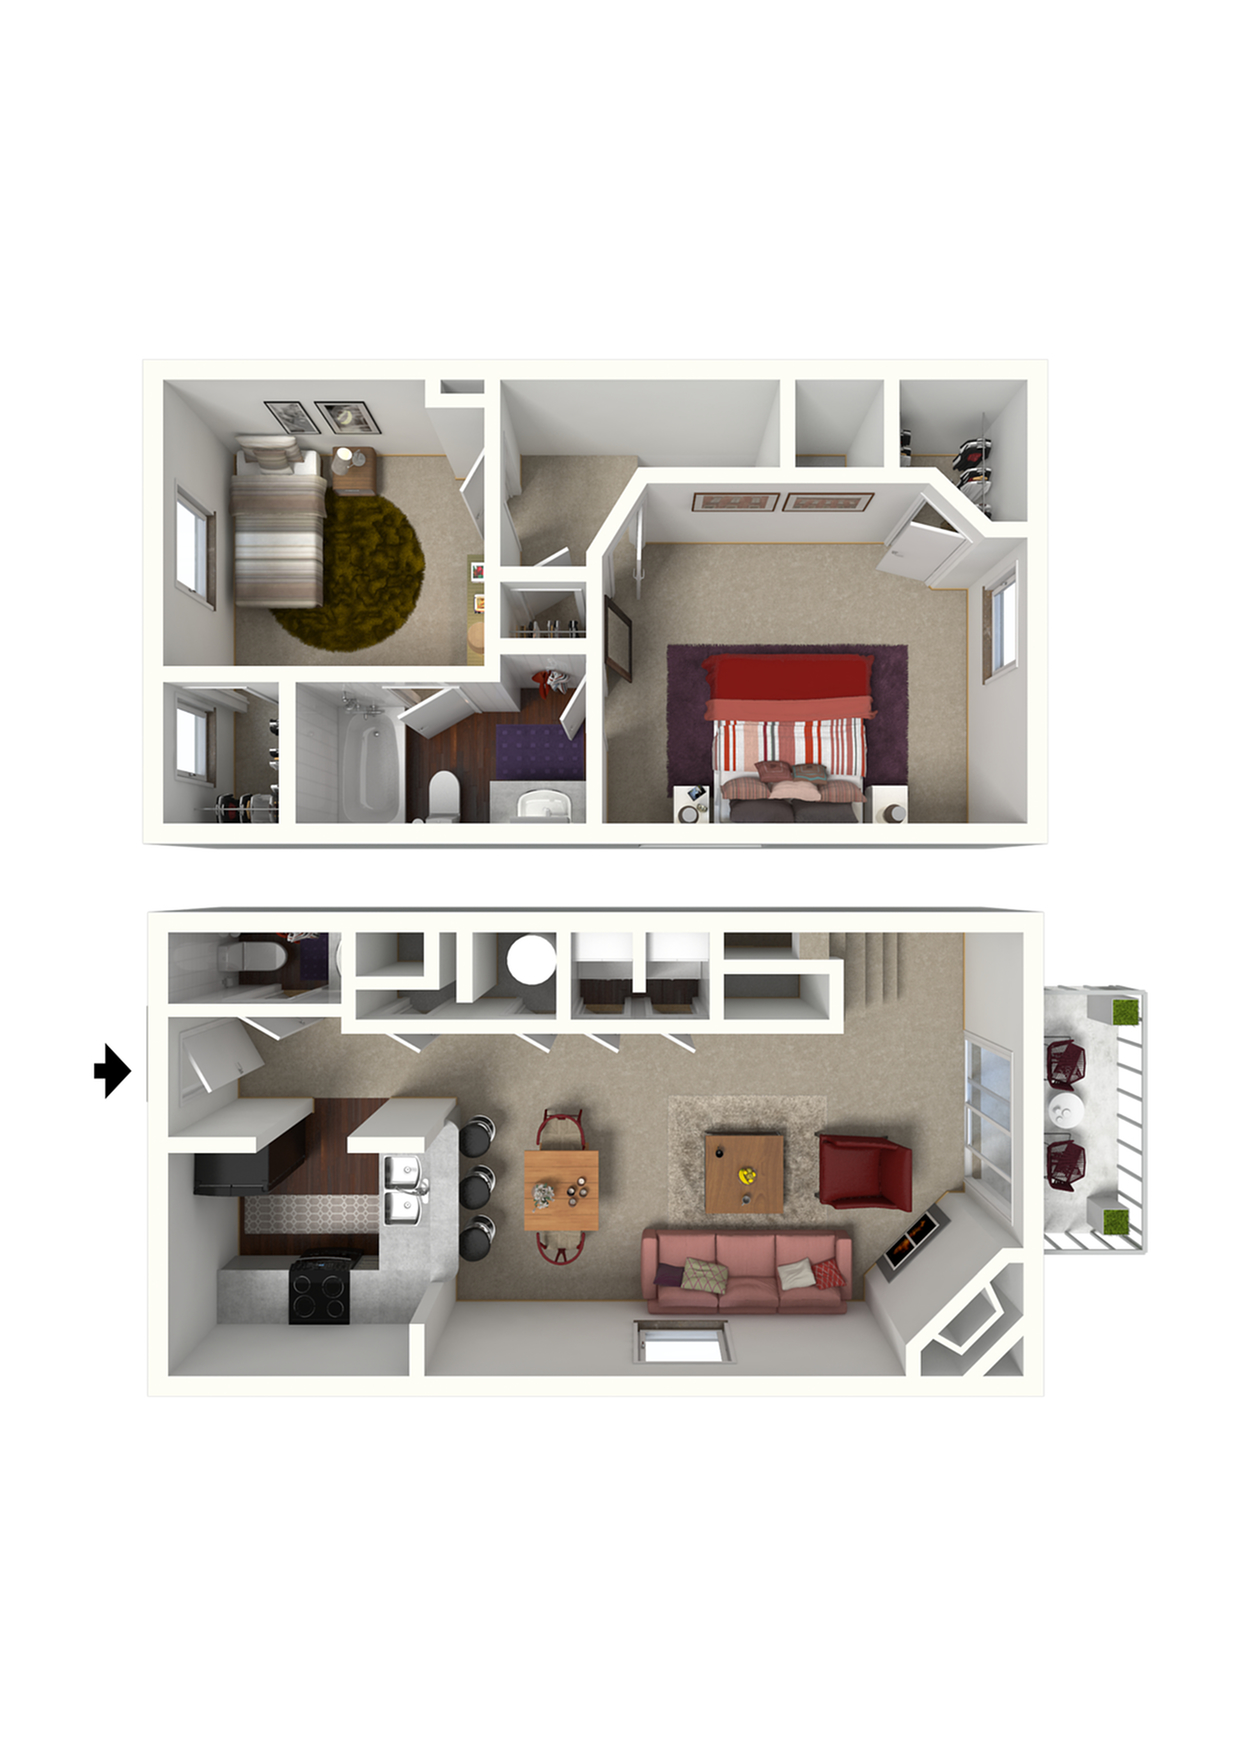 California Floor Plan - 2x1.5 960 SqFt.